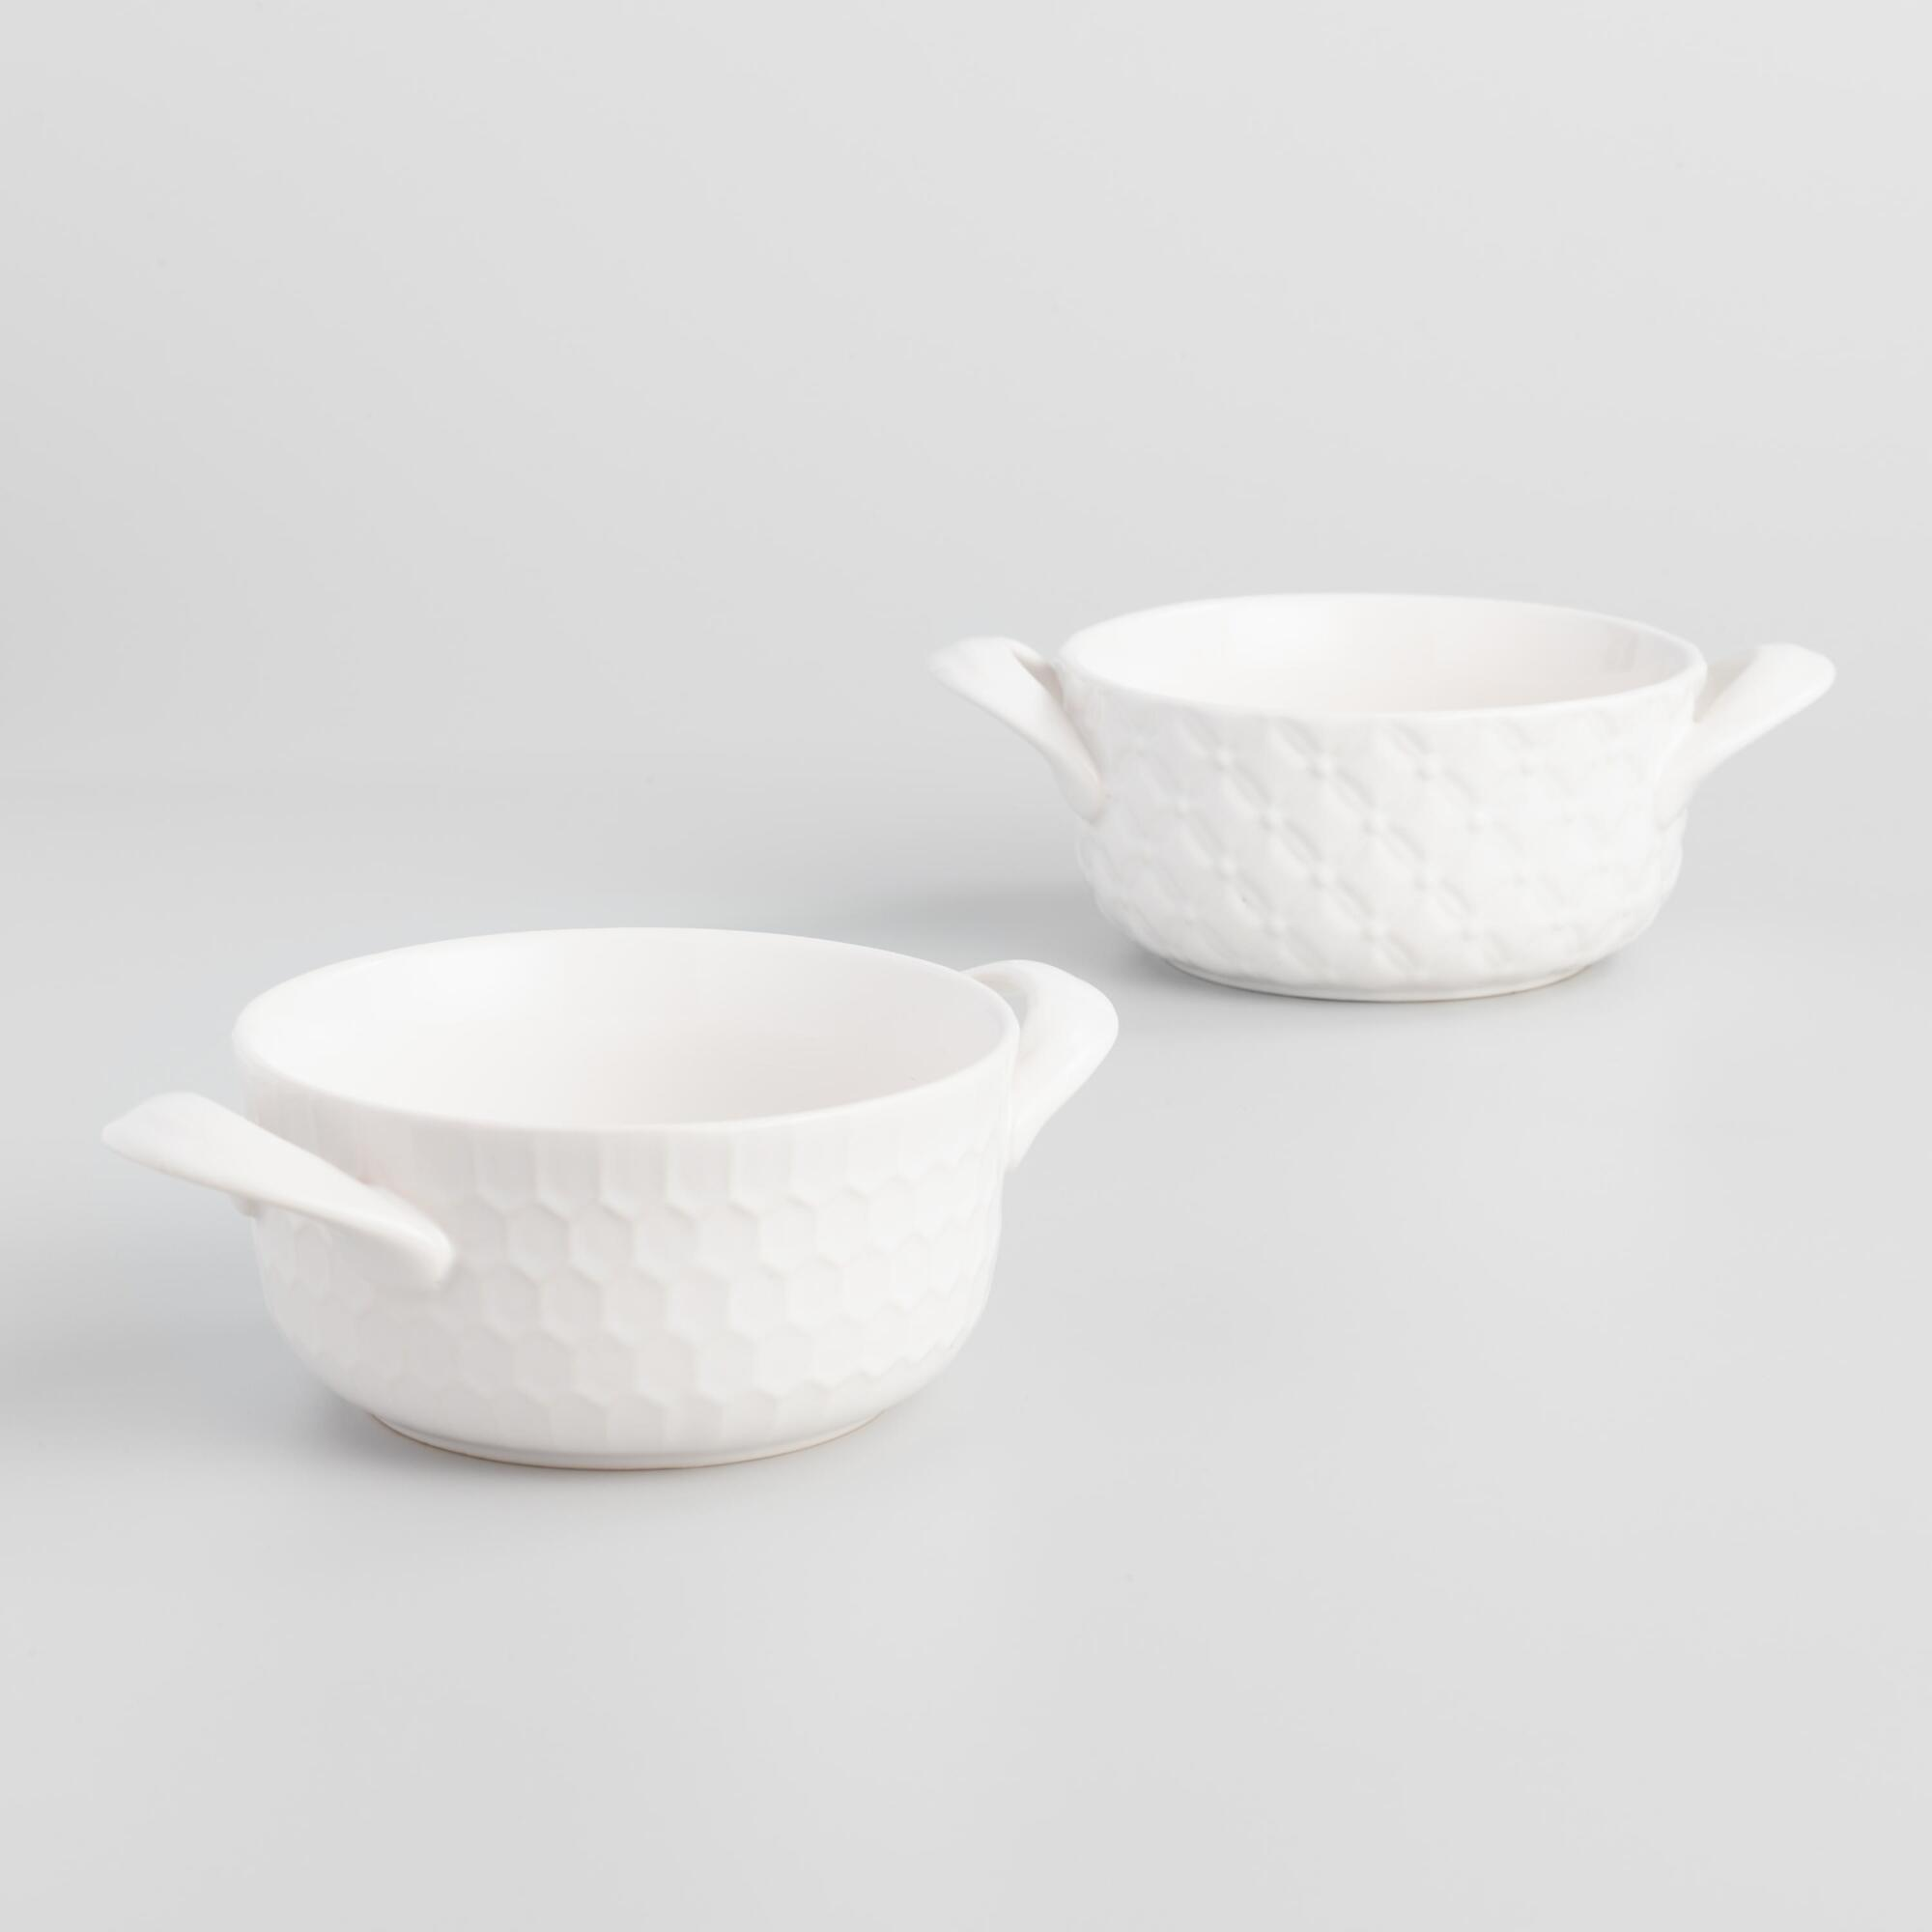 White Textured Stoneware Double Handled Soup Crocks Set of 2 by World Market